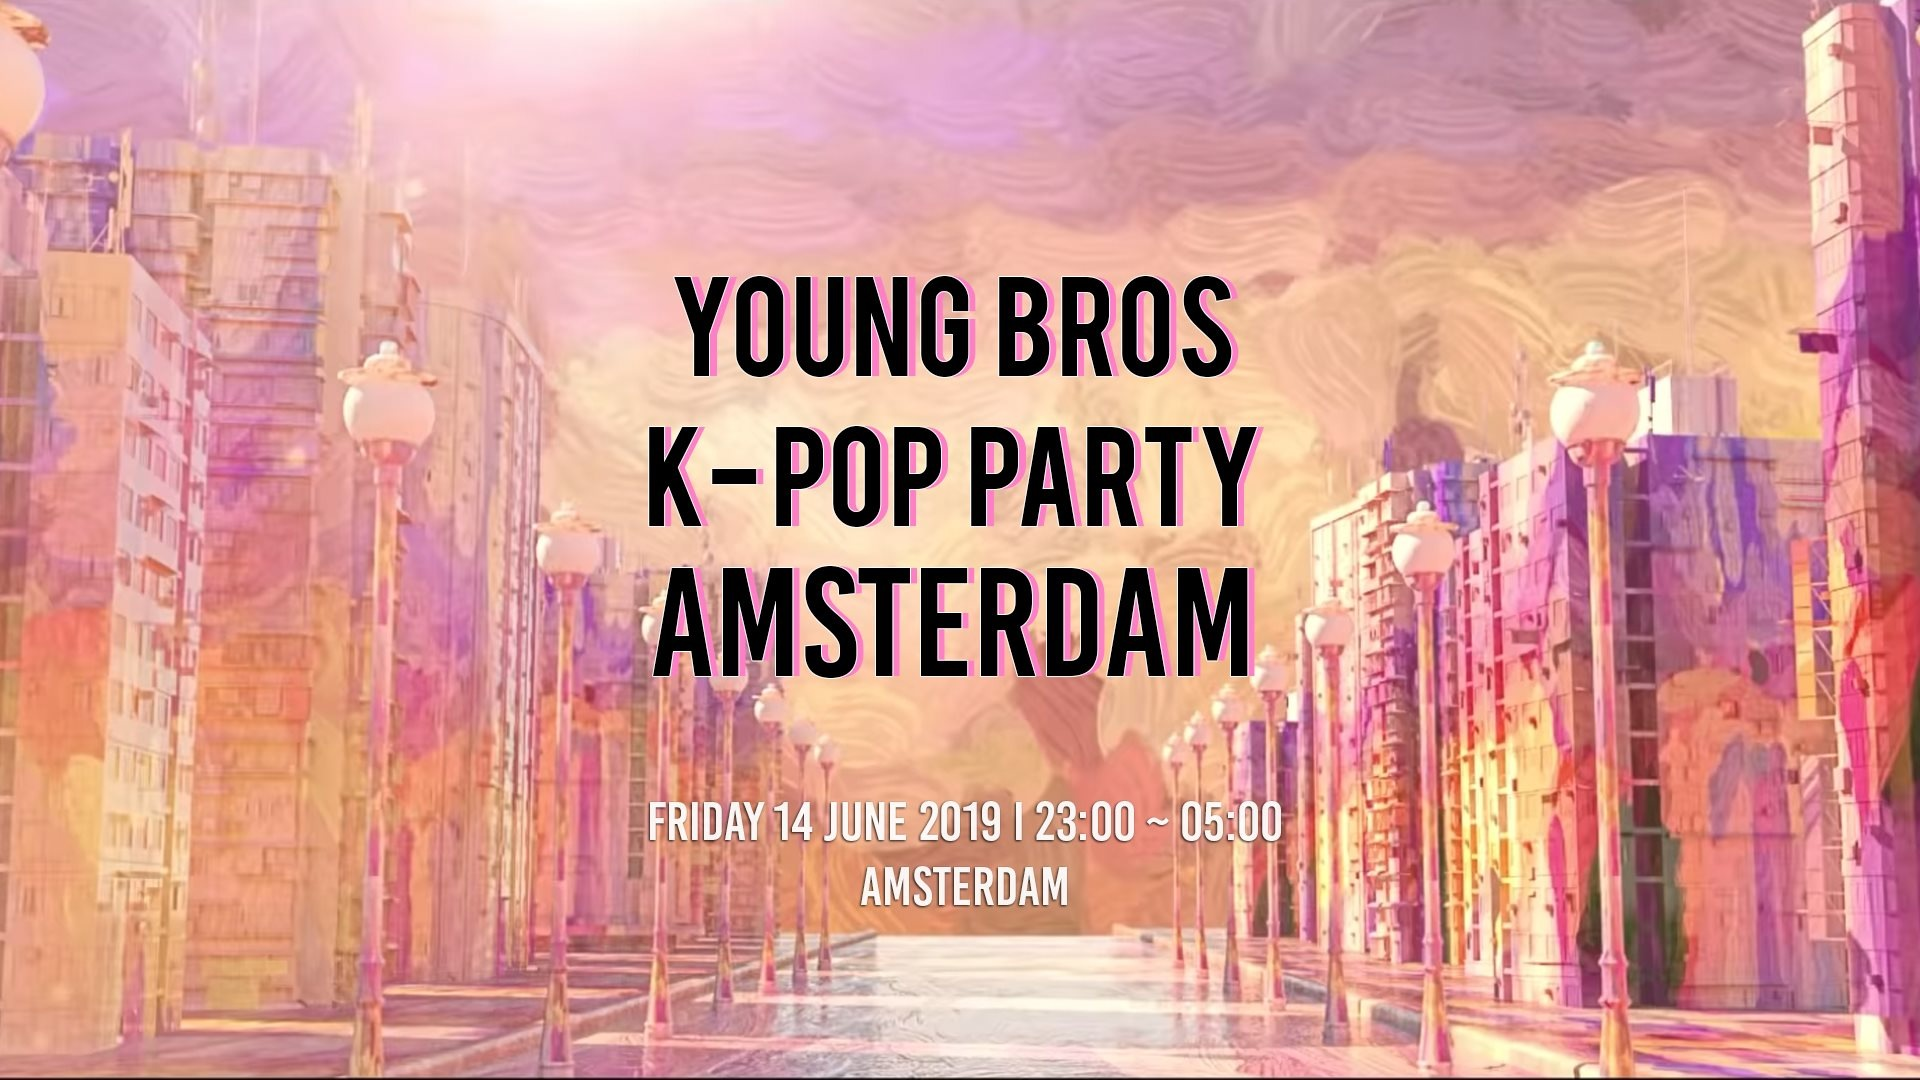 K-Pop Party · Amsterdam - Tickets & info